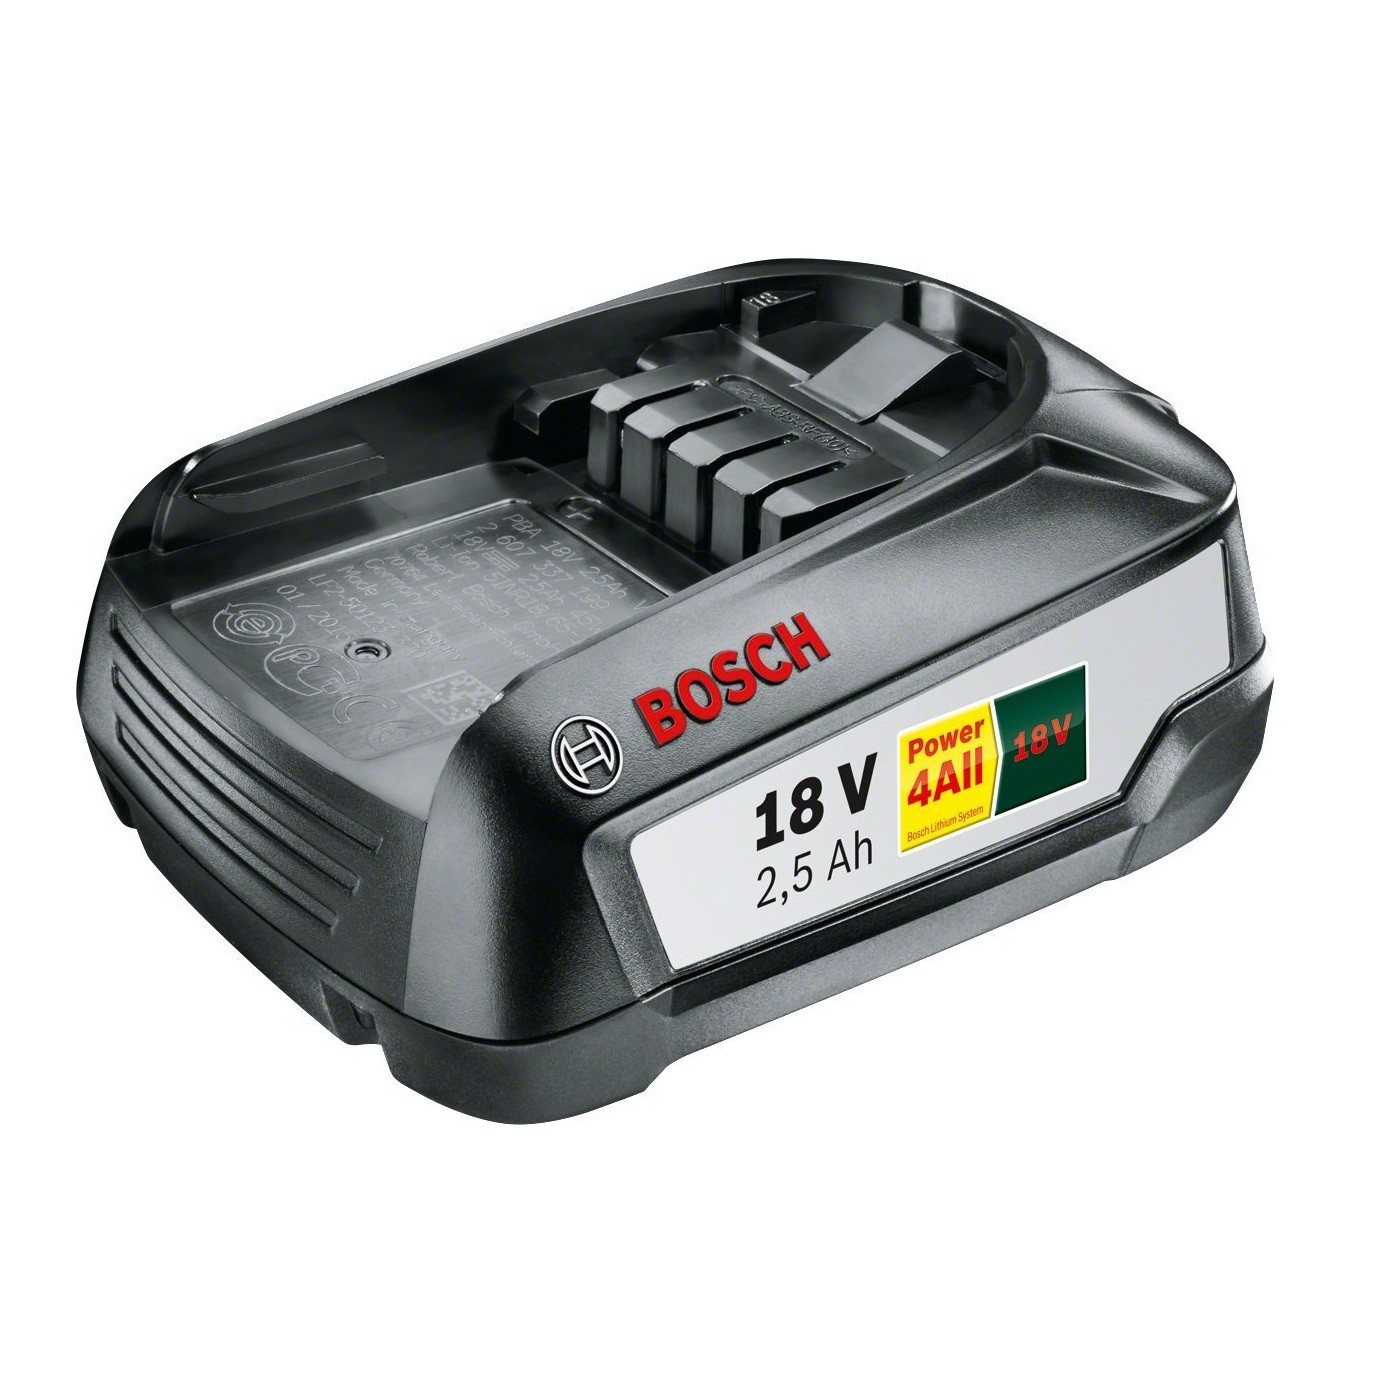 bosch green 18v 2 5ah lithium ion battery power4all 1600a005b0 powertool world. Black Bedroom Furniture Sets. Home Design Ideas